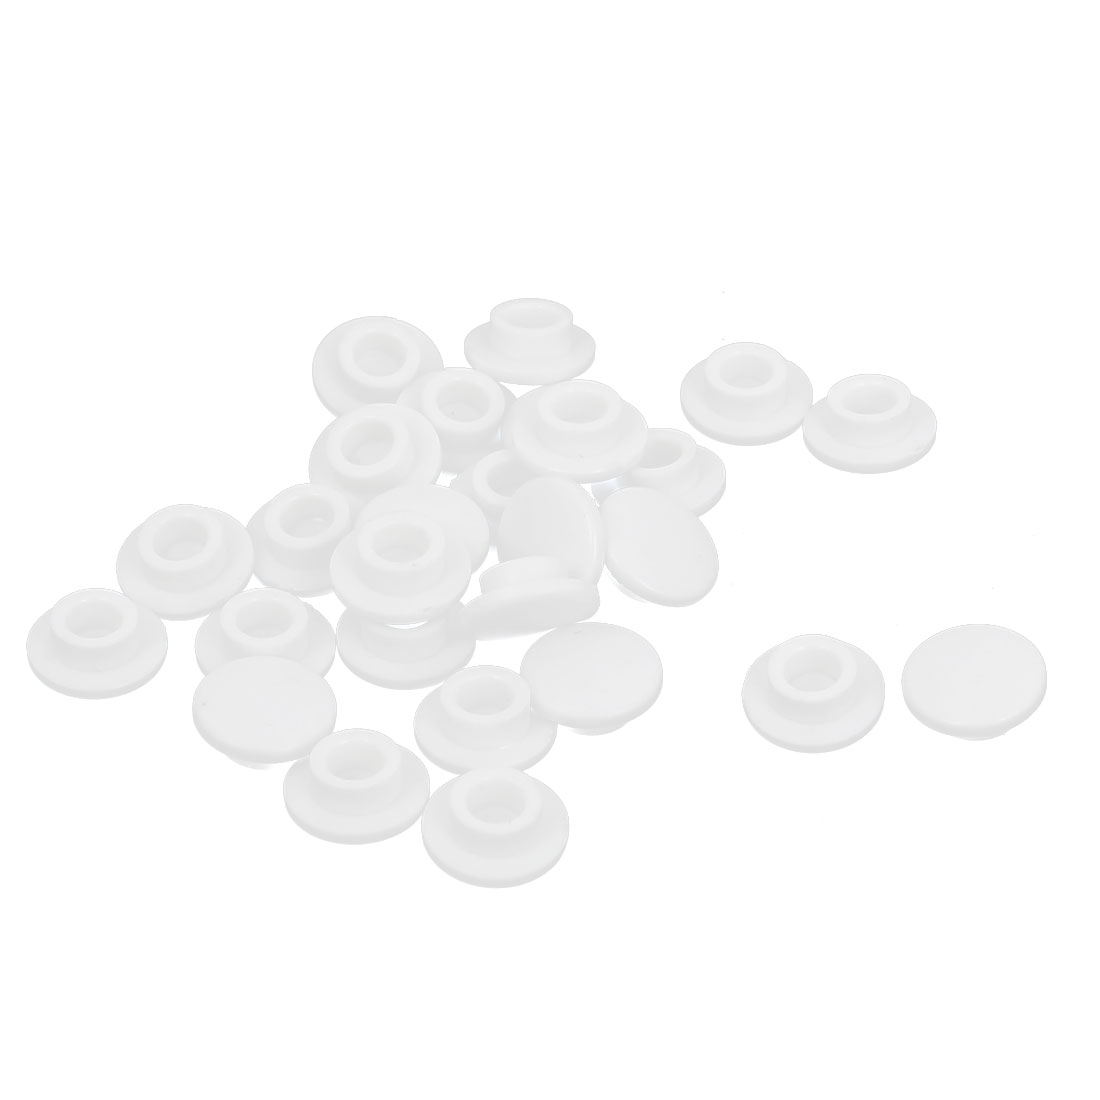 27Pcs 3.2mm Hole Dia White Plastic Pushbutton Tactile Switch Caps Cover